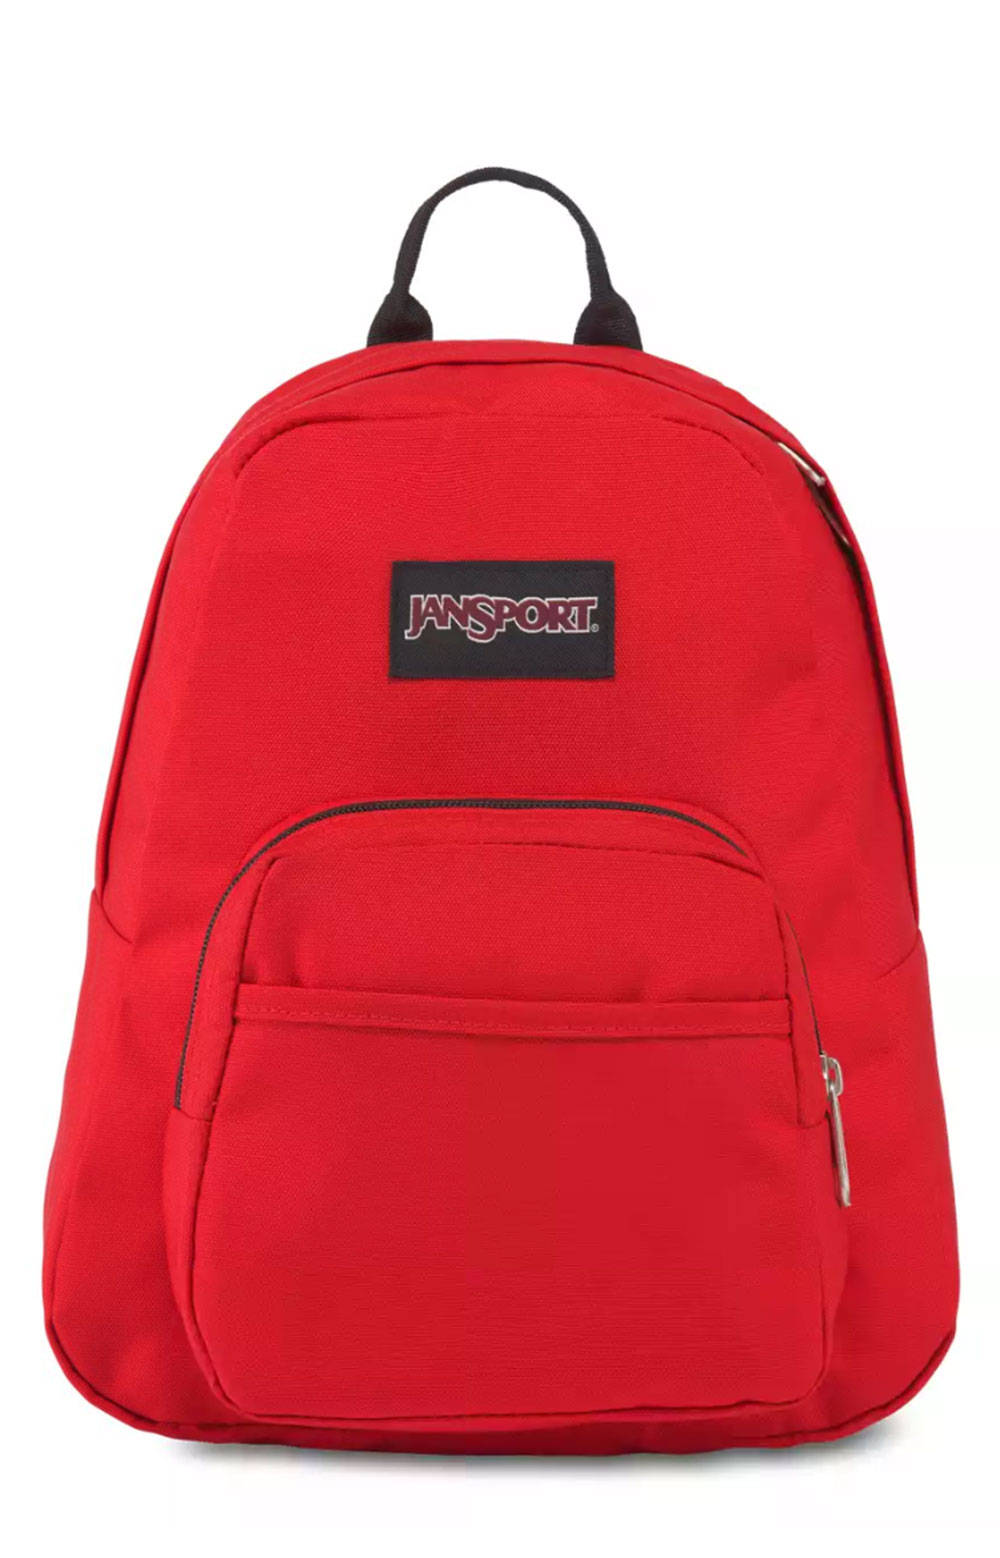 Half Pint Mini Backpack - Bright Cherry